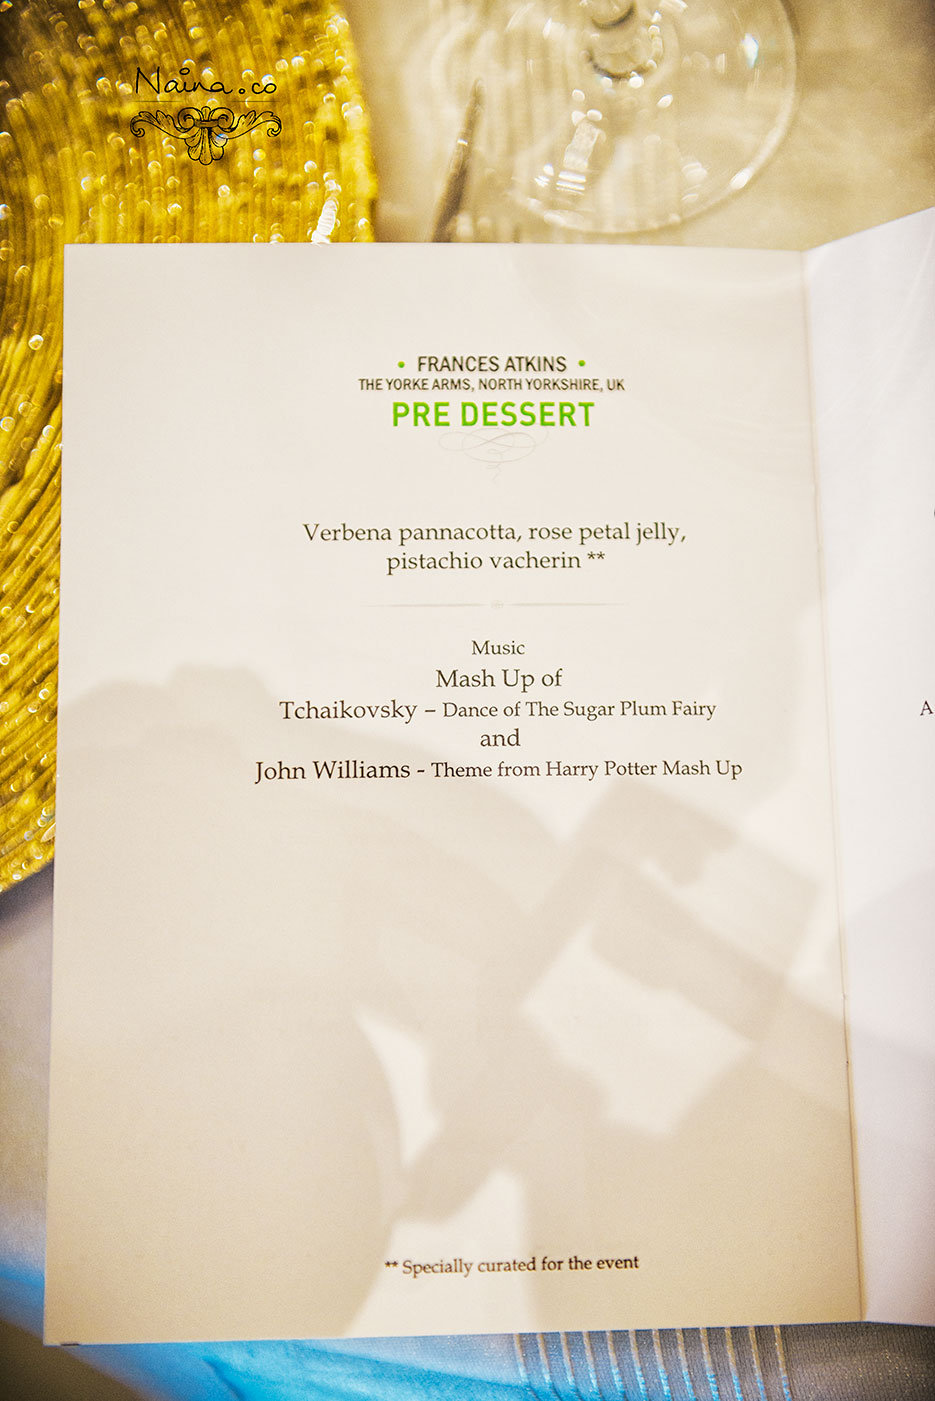 Menu by Michelin Star Chefs for the CSSG Gastronomy Summit 2012, New Delhi, India. Laurie Gear, Ian Curley, Vineet Bhatia, Frances Atkins, Marcello Tully, Anjum Anand. Food Photography by photographer Naina Redhu of Naina.co